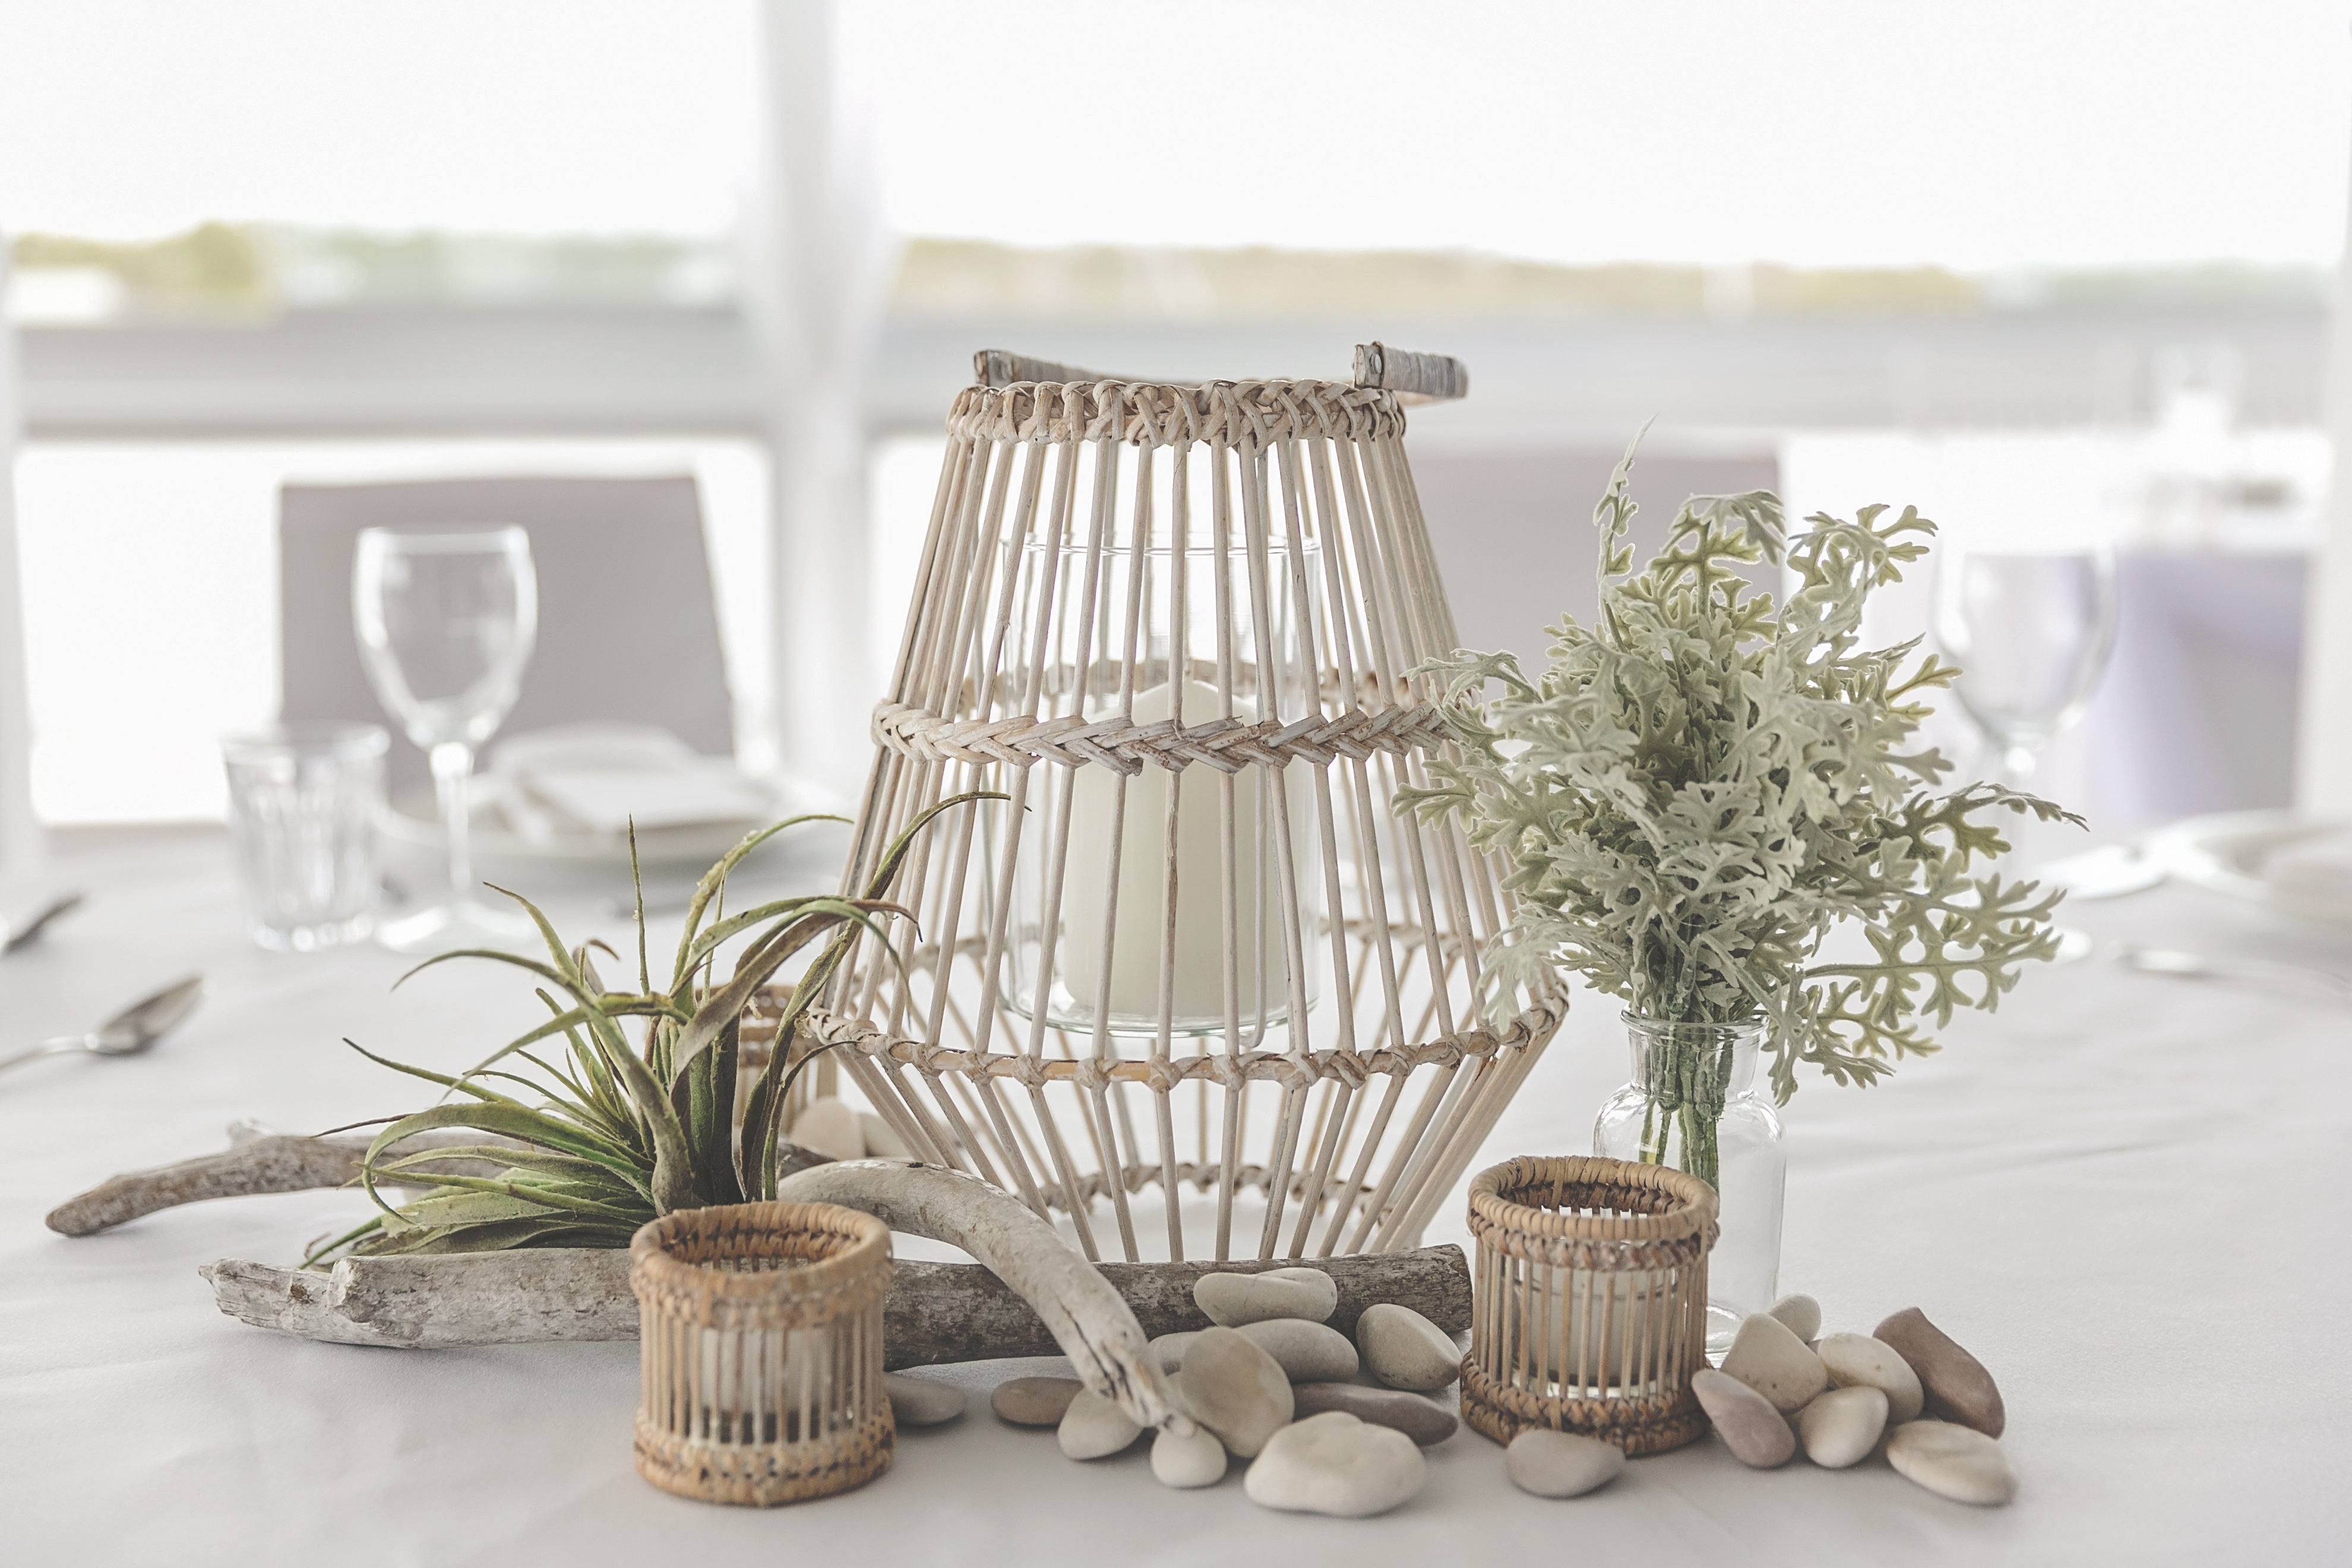 Conical bamboo lantern - Splash Events, Noosa & Sunshine Coast